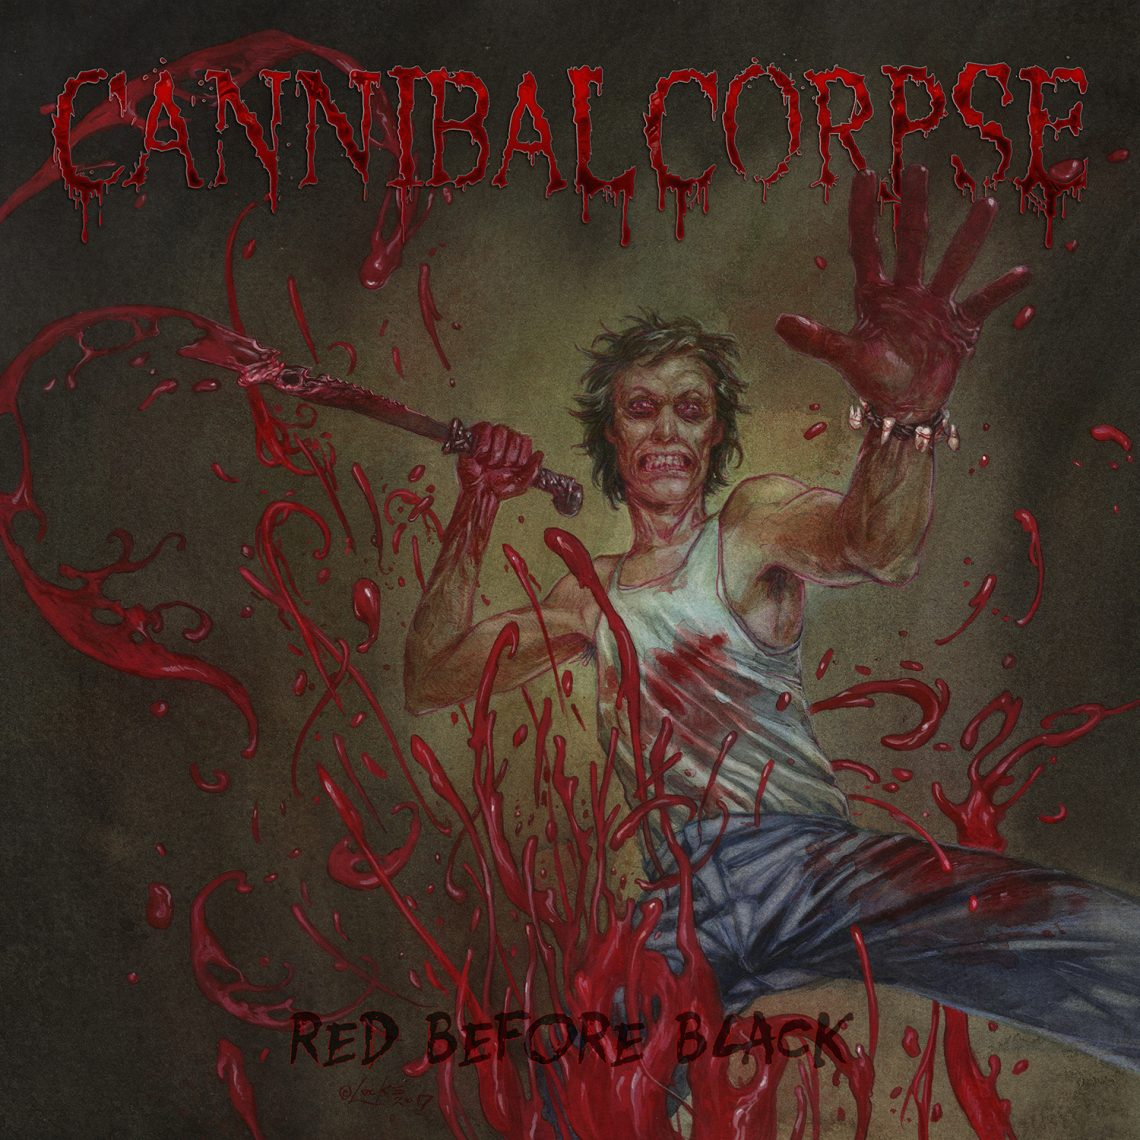 Cannibal Corpse – Red Before Black Album Review